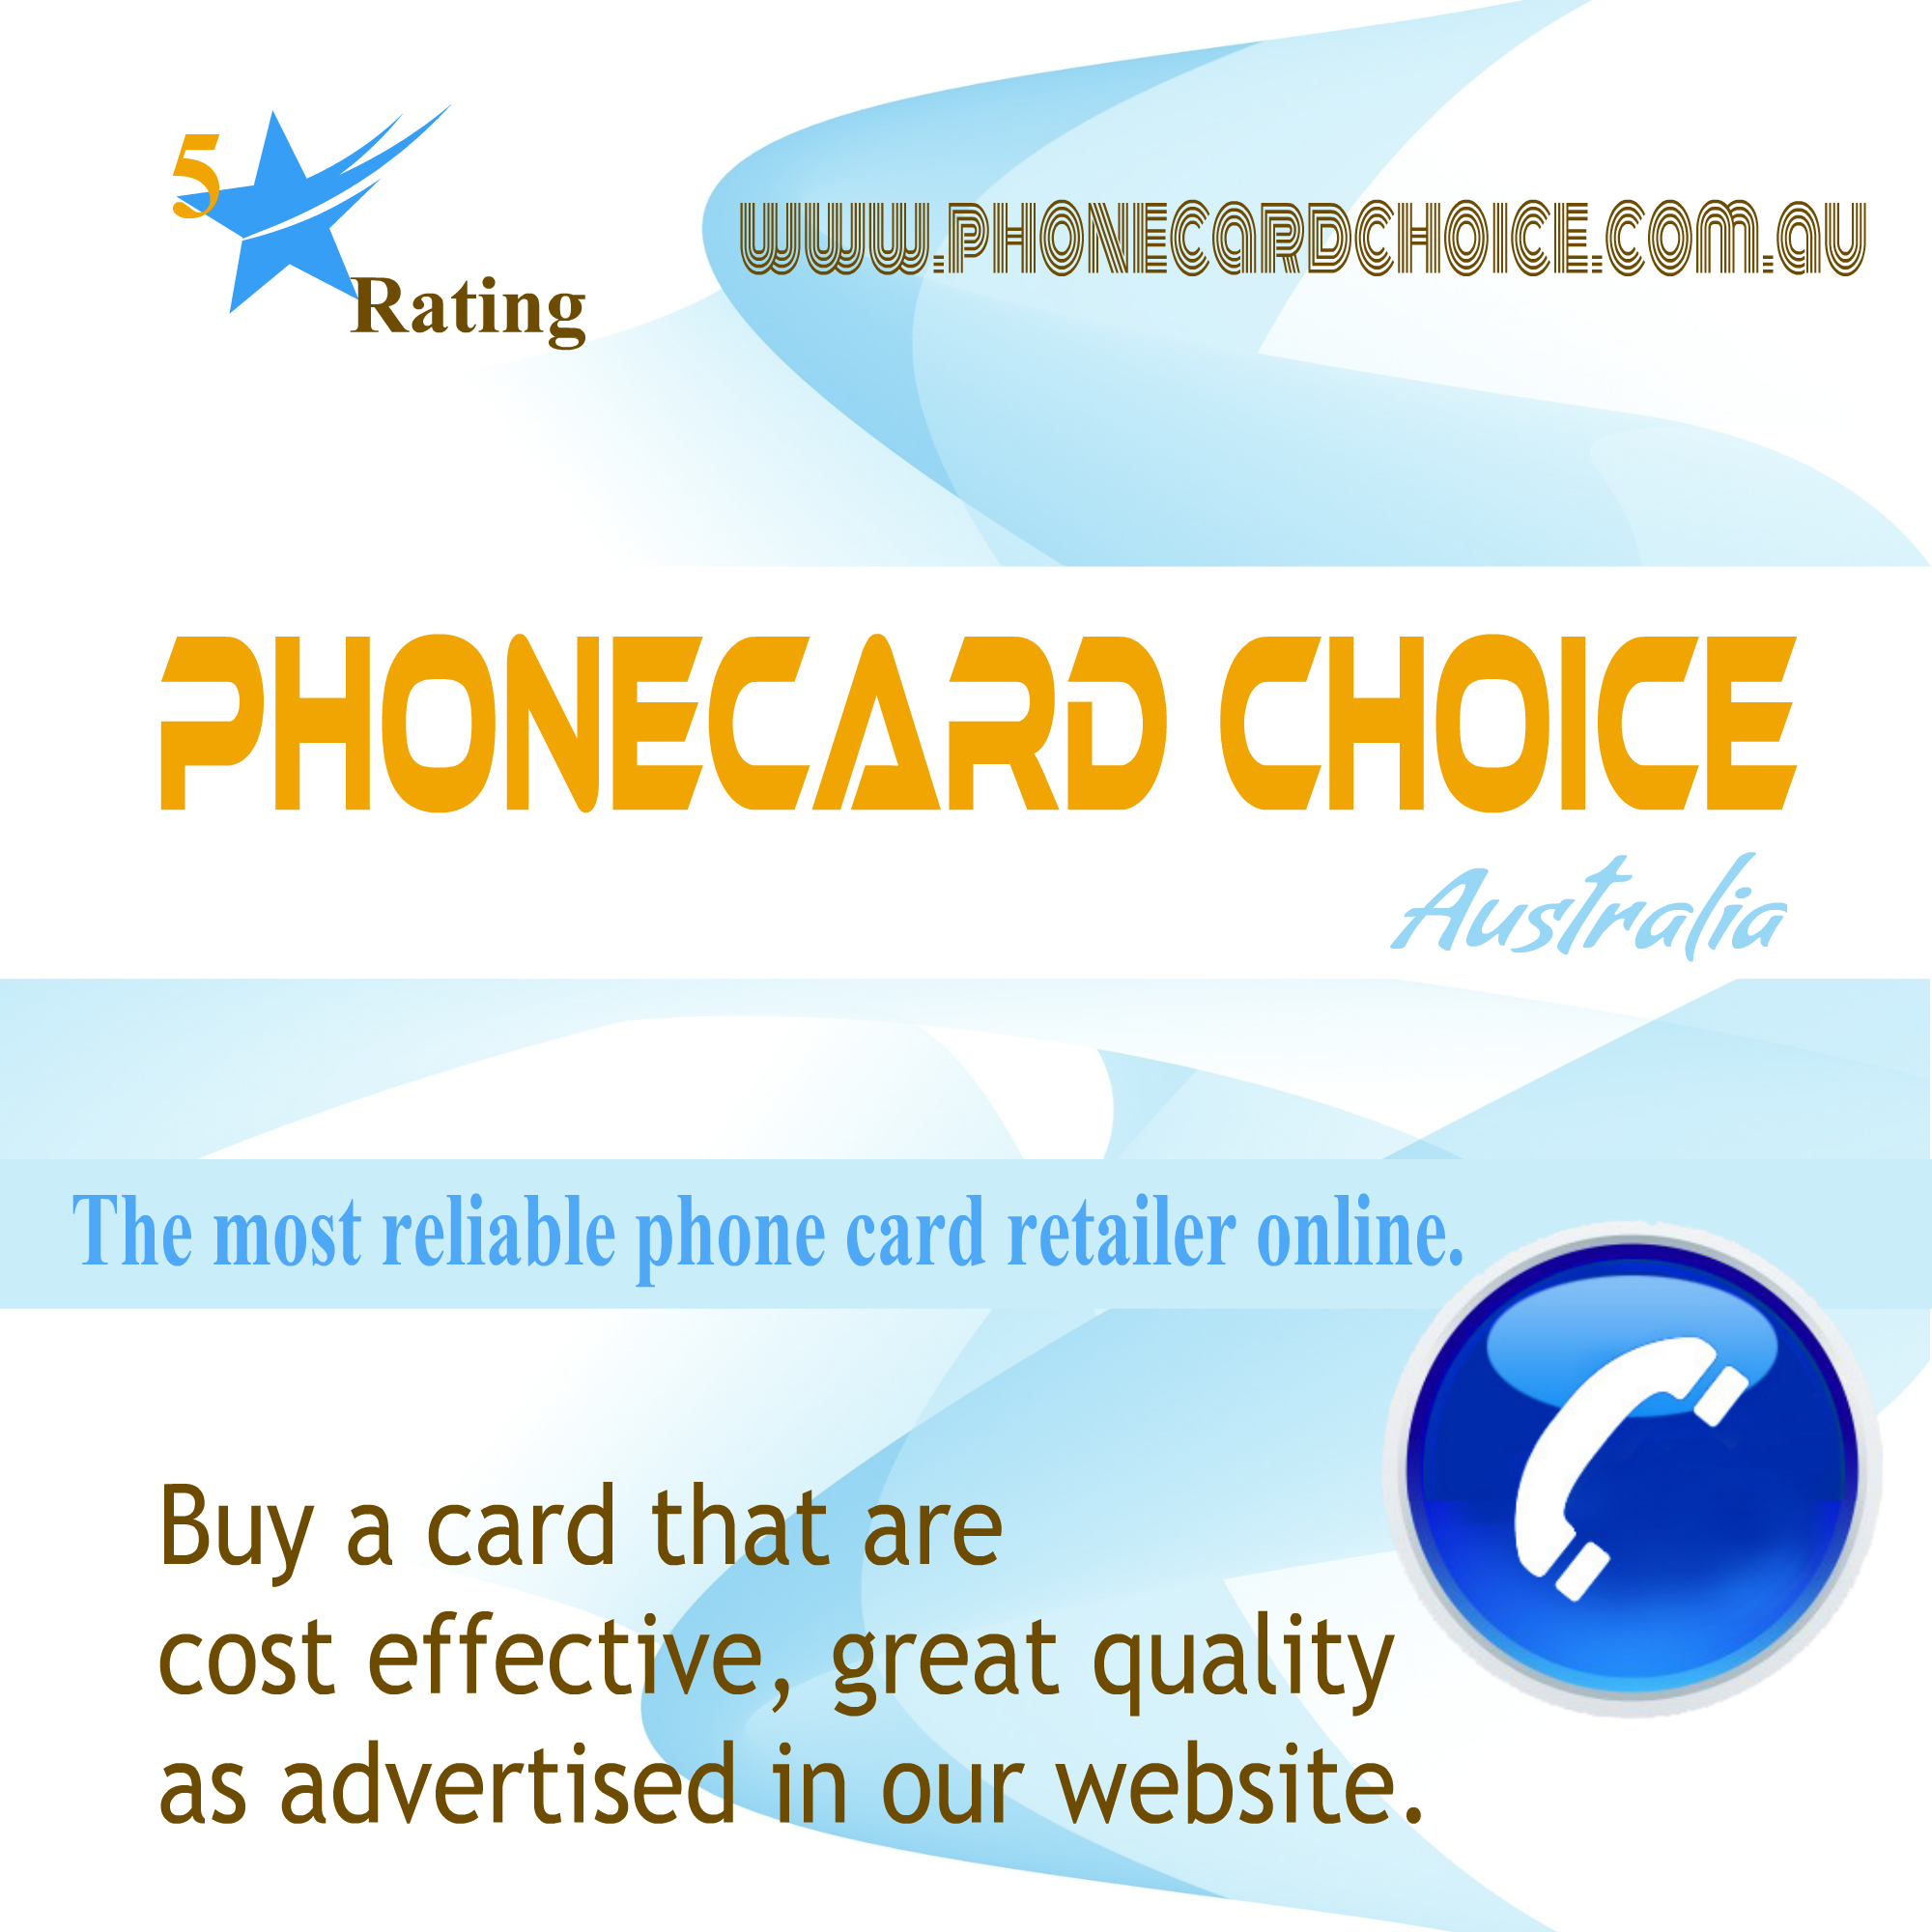 phone card is the best way to make cheap international calls - Phone Card For International Calls